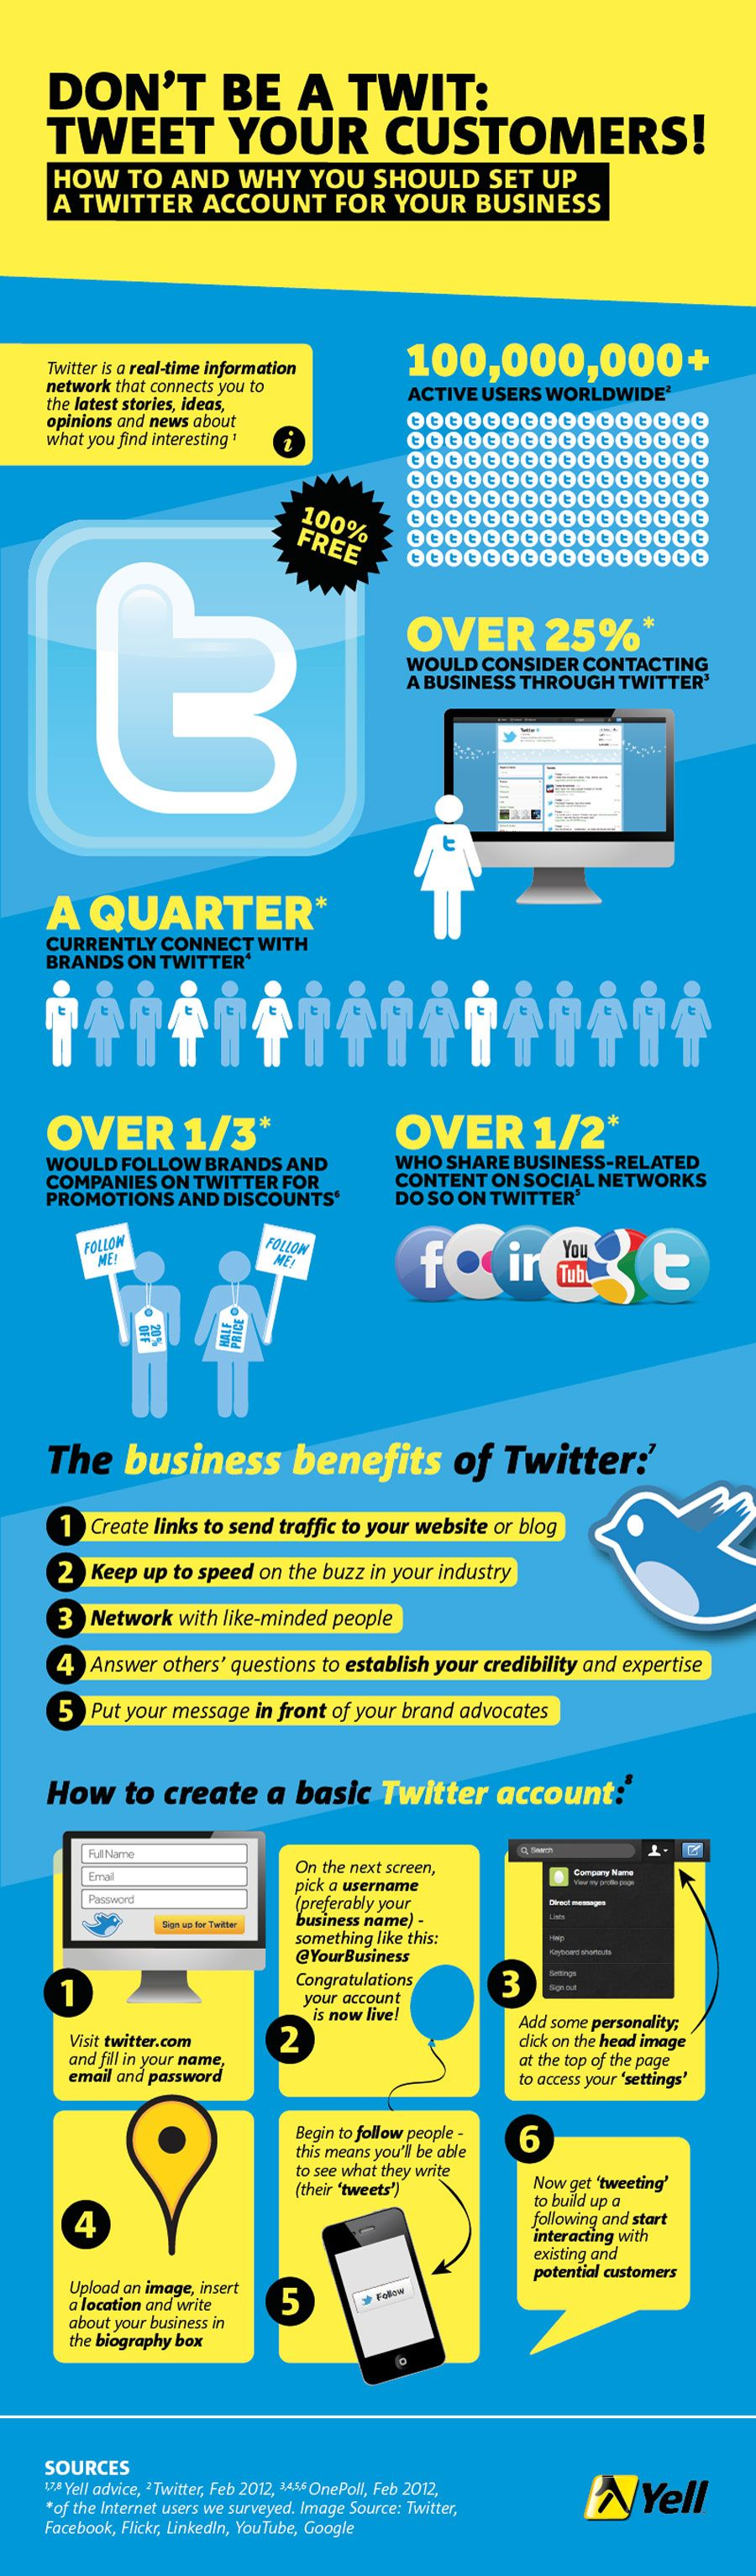 The Business Benefits Of Twitter [INFOGRAPHIC]